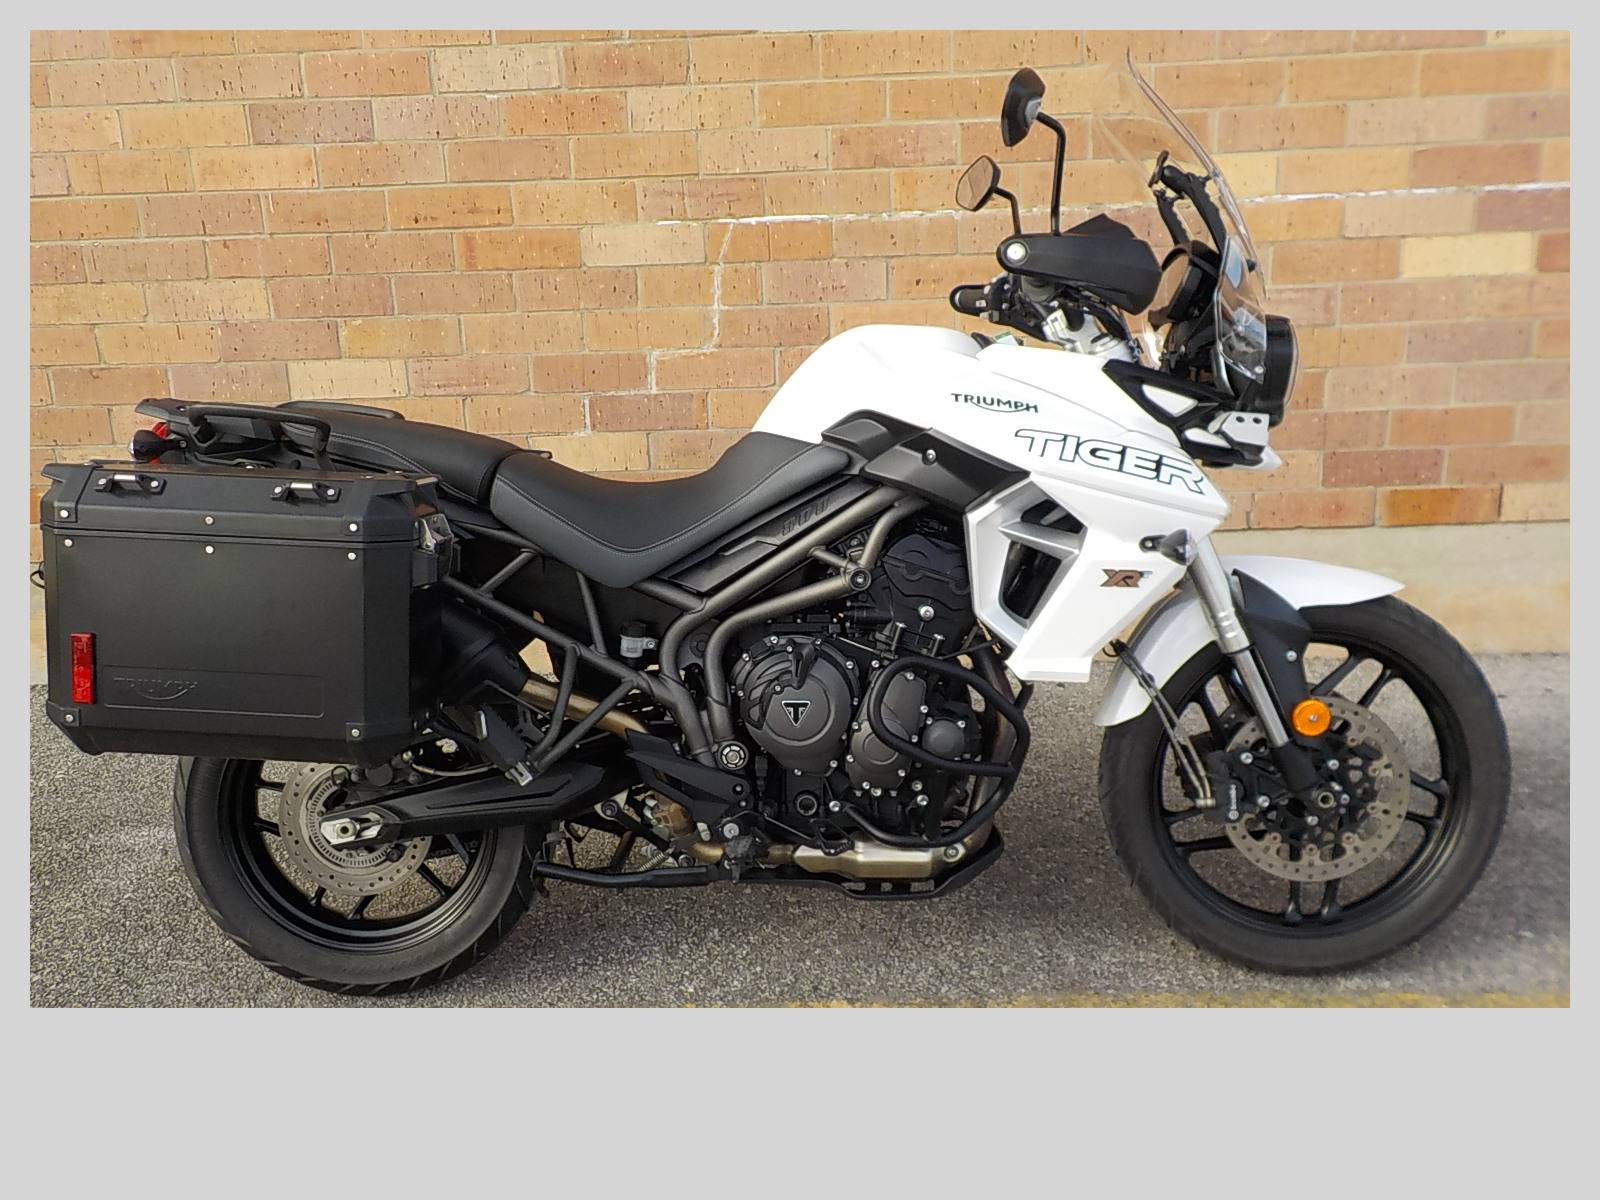 2019 Triumph Tiger 800 XRt in San Antonio, Texas - Photo 8